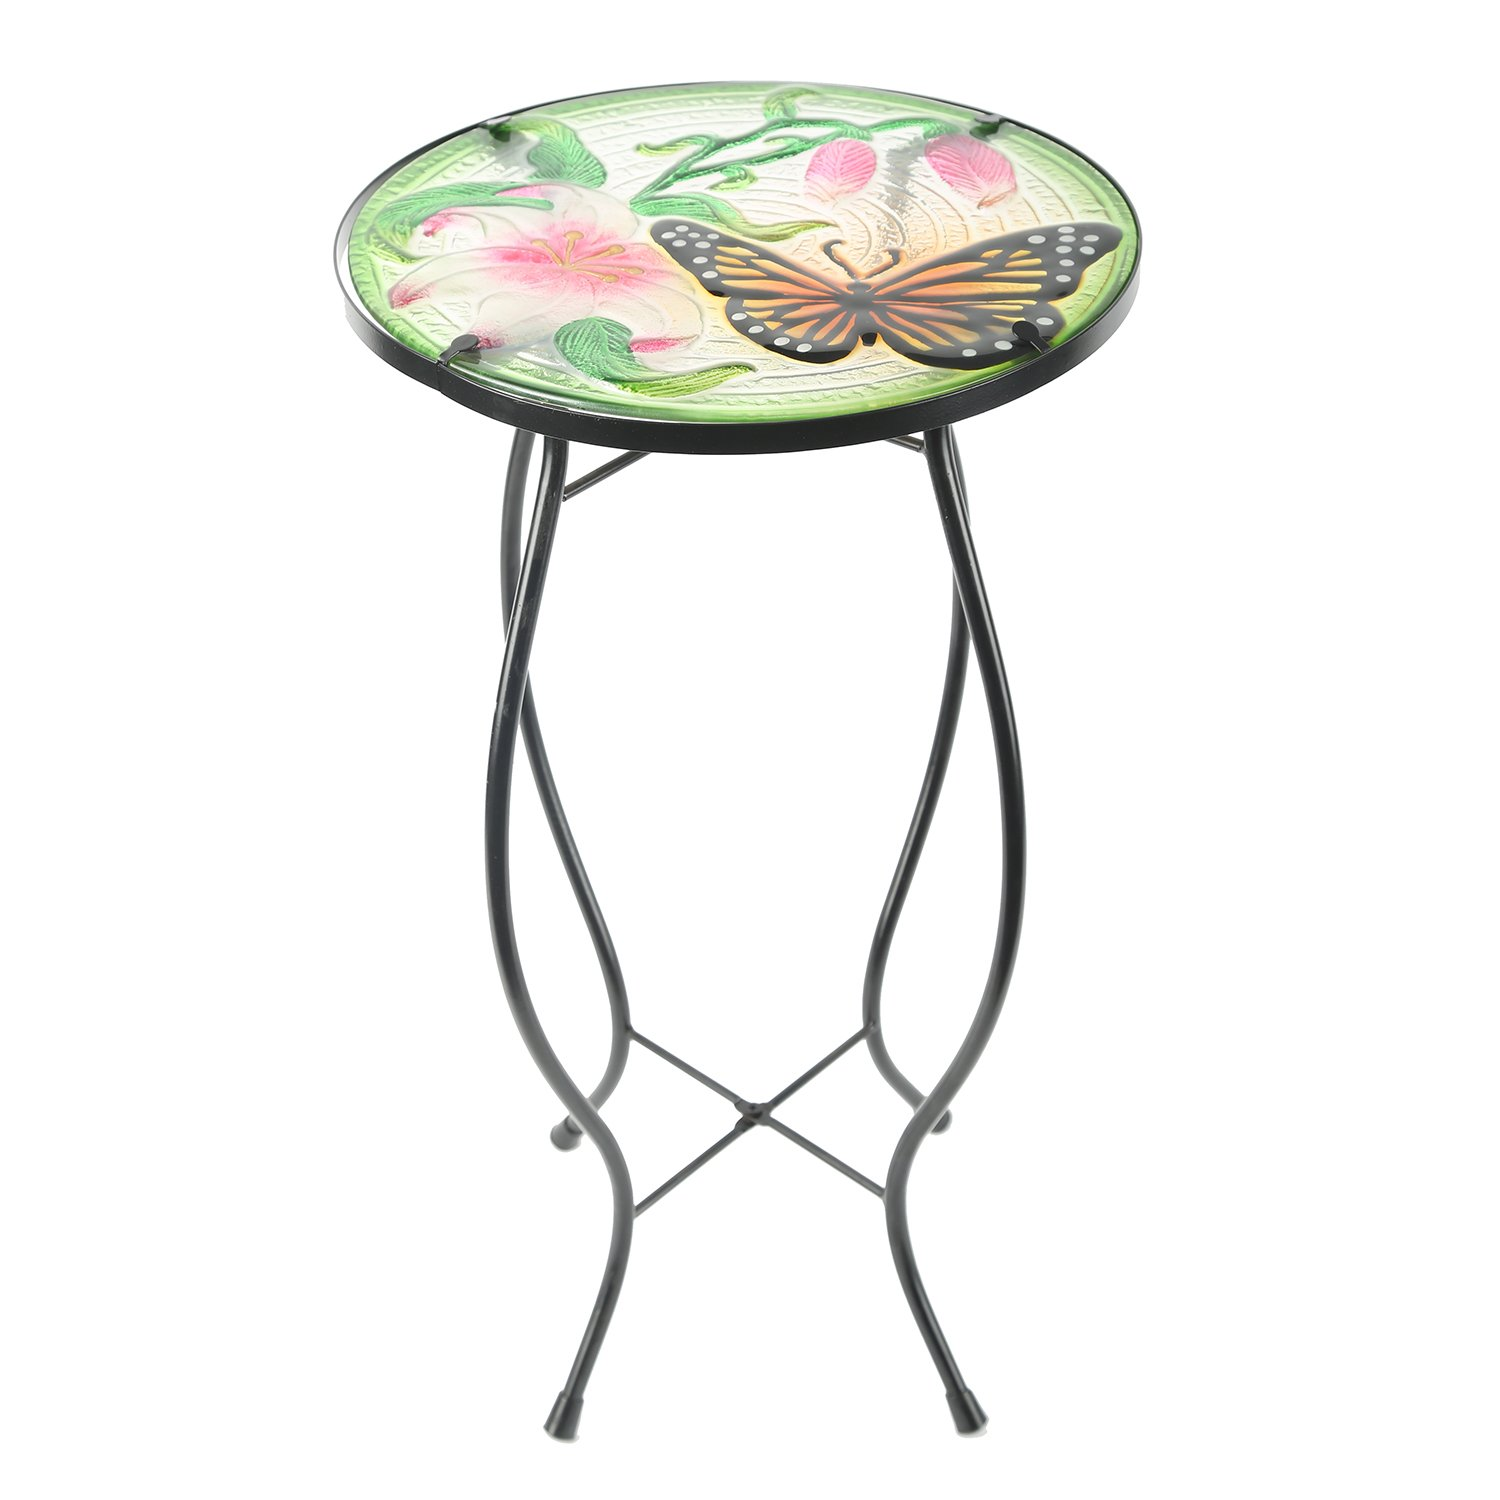 cedar home side table outdoor garden patio metal accent cbl bella green mosaic desk with round hand painted glass pink cooler blue pottery barn floor lamps inexpensive decor beach